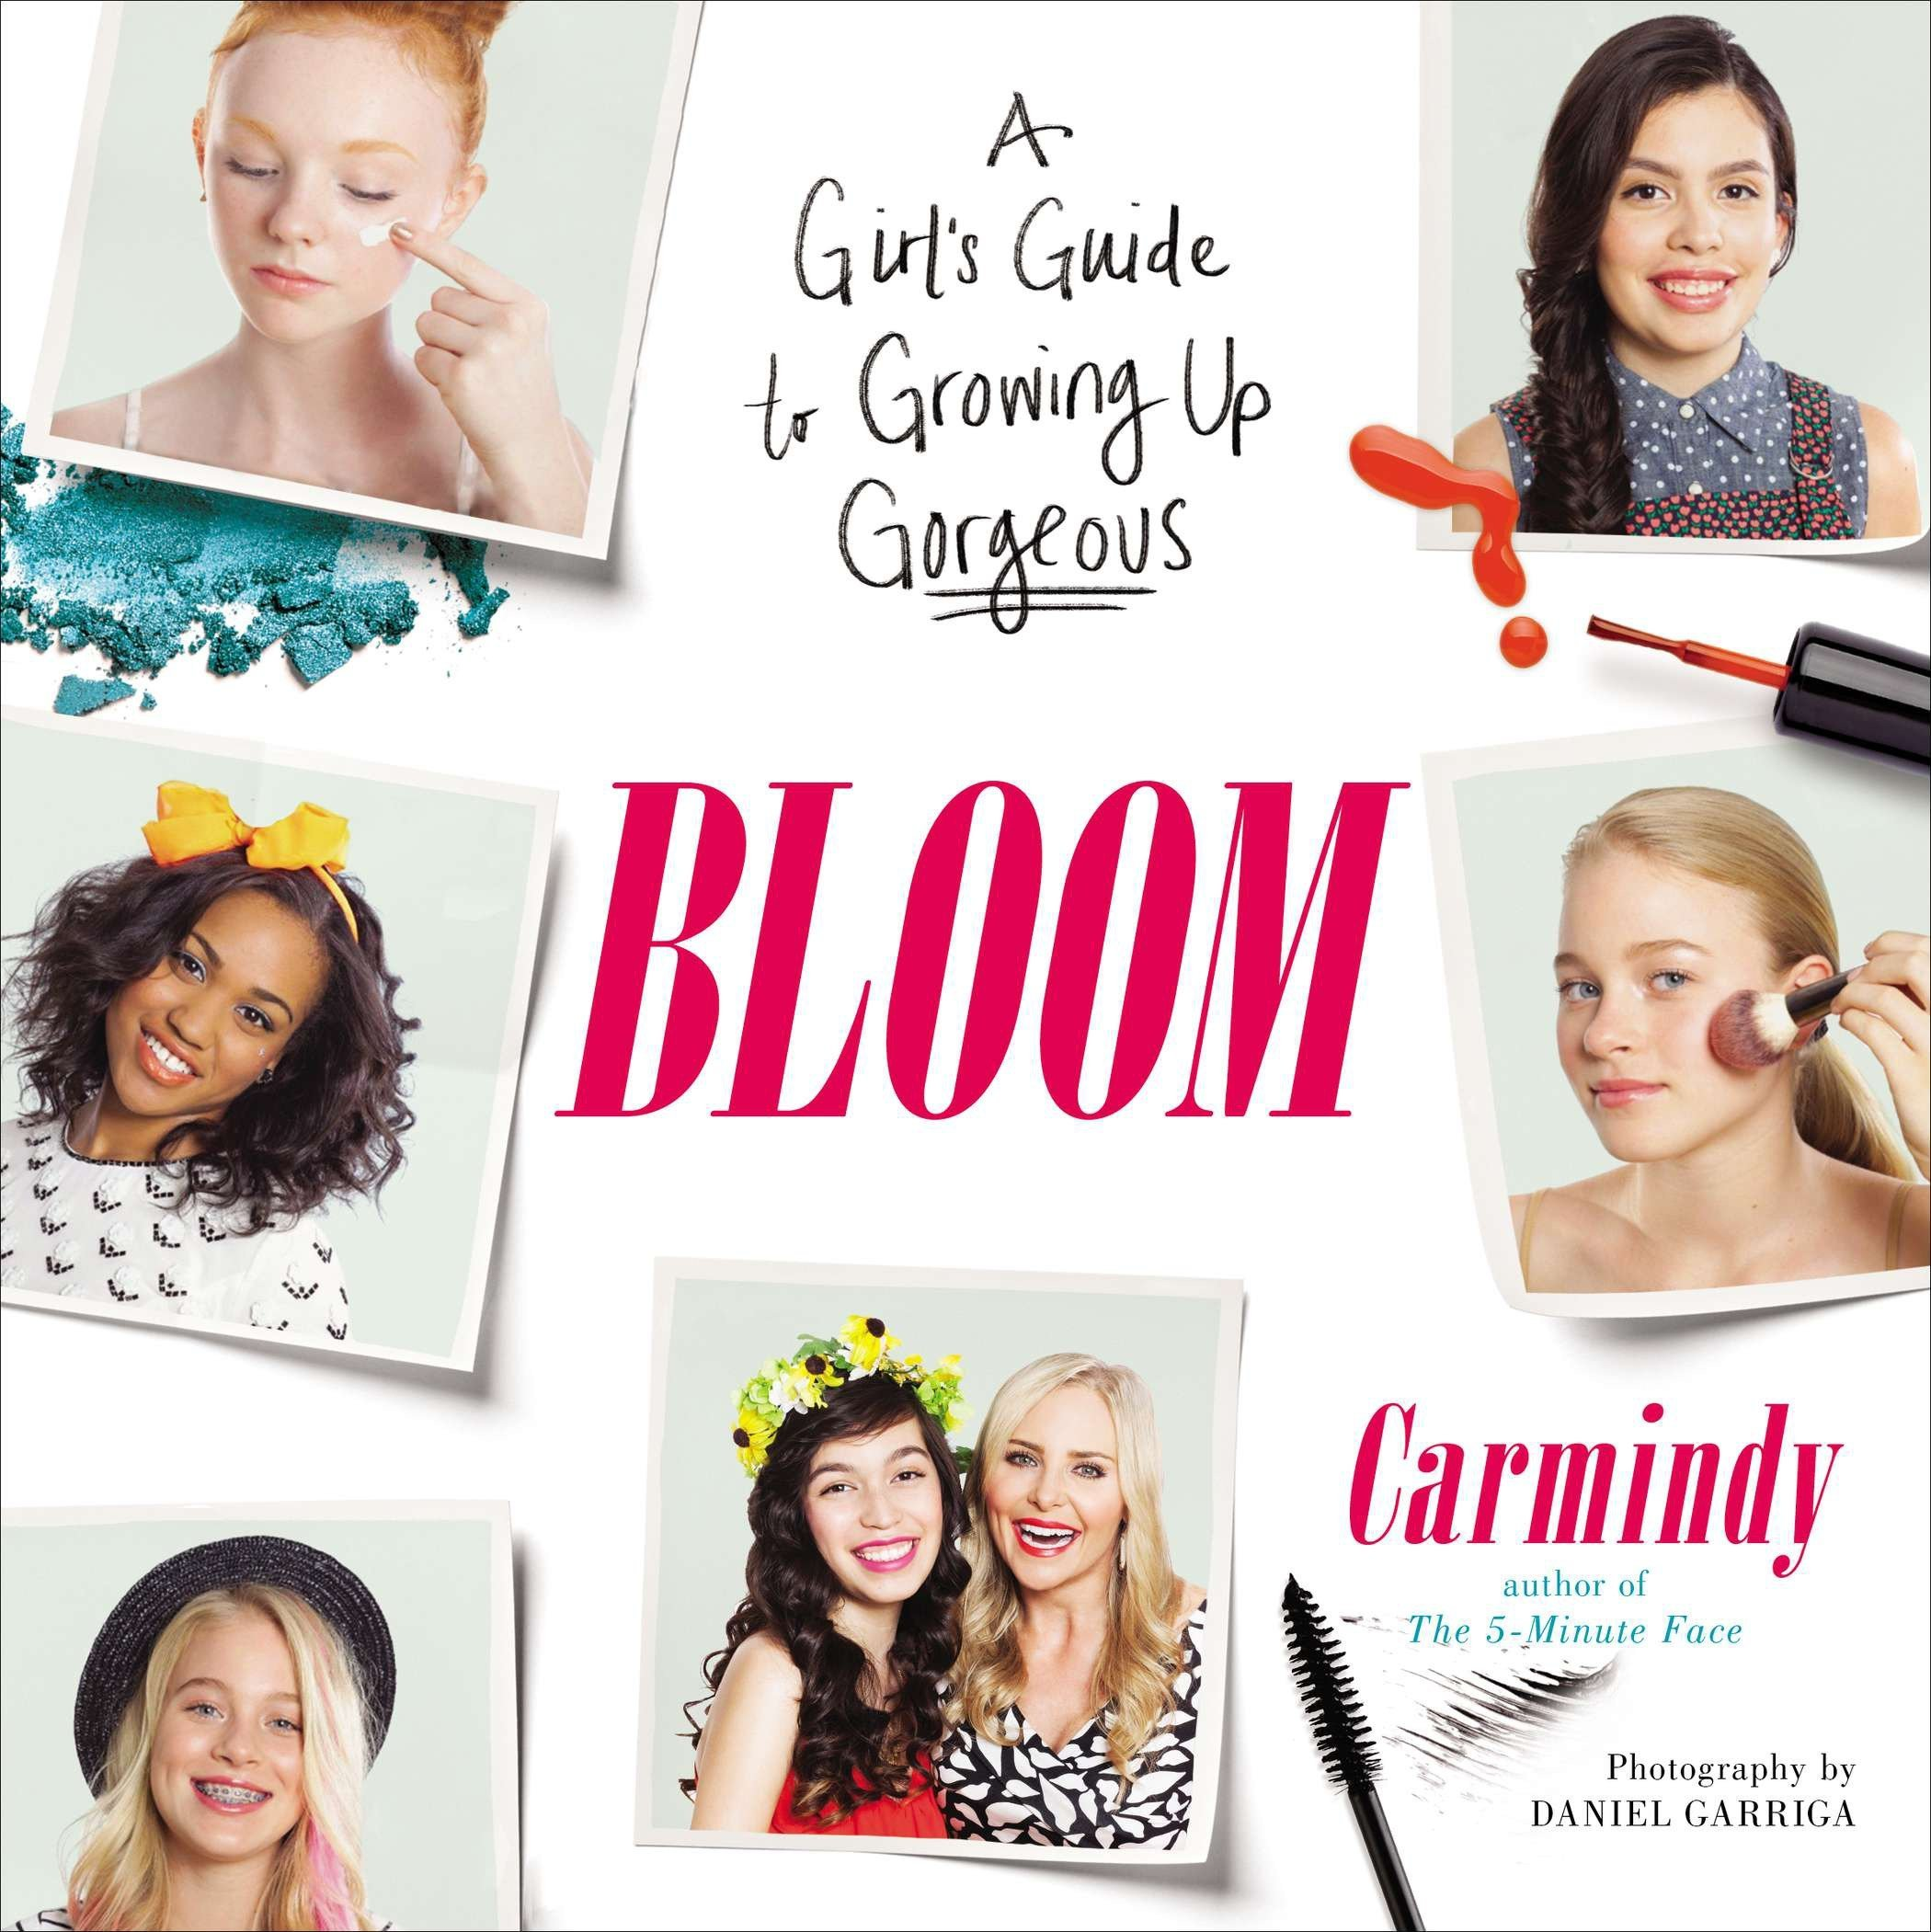 Bloom: A Girl's Guide to Growing Up Gorgeous: Carmindy: 9780399166594:  Amazon.com: Books